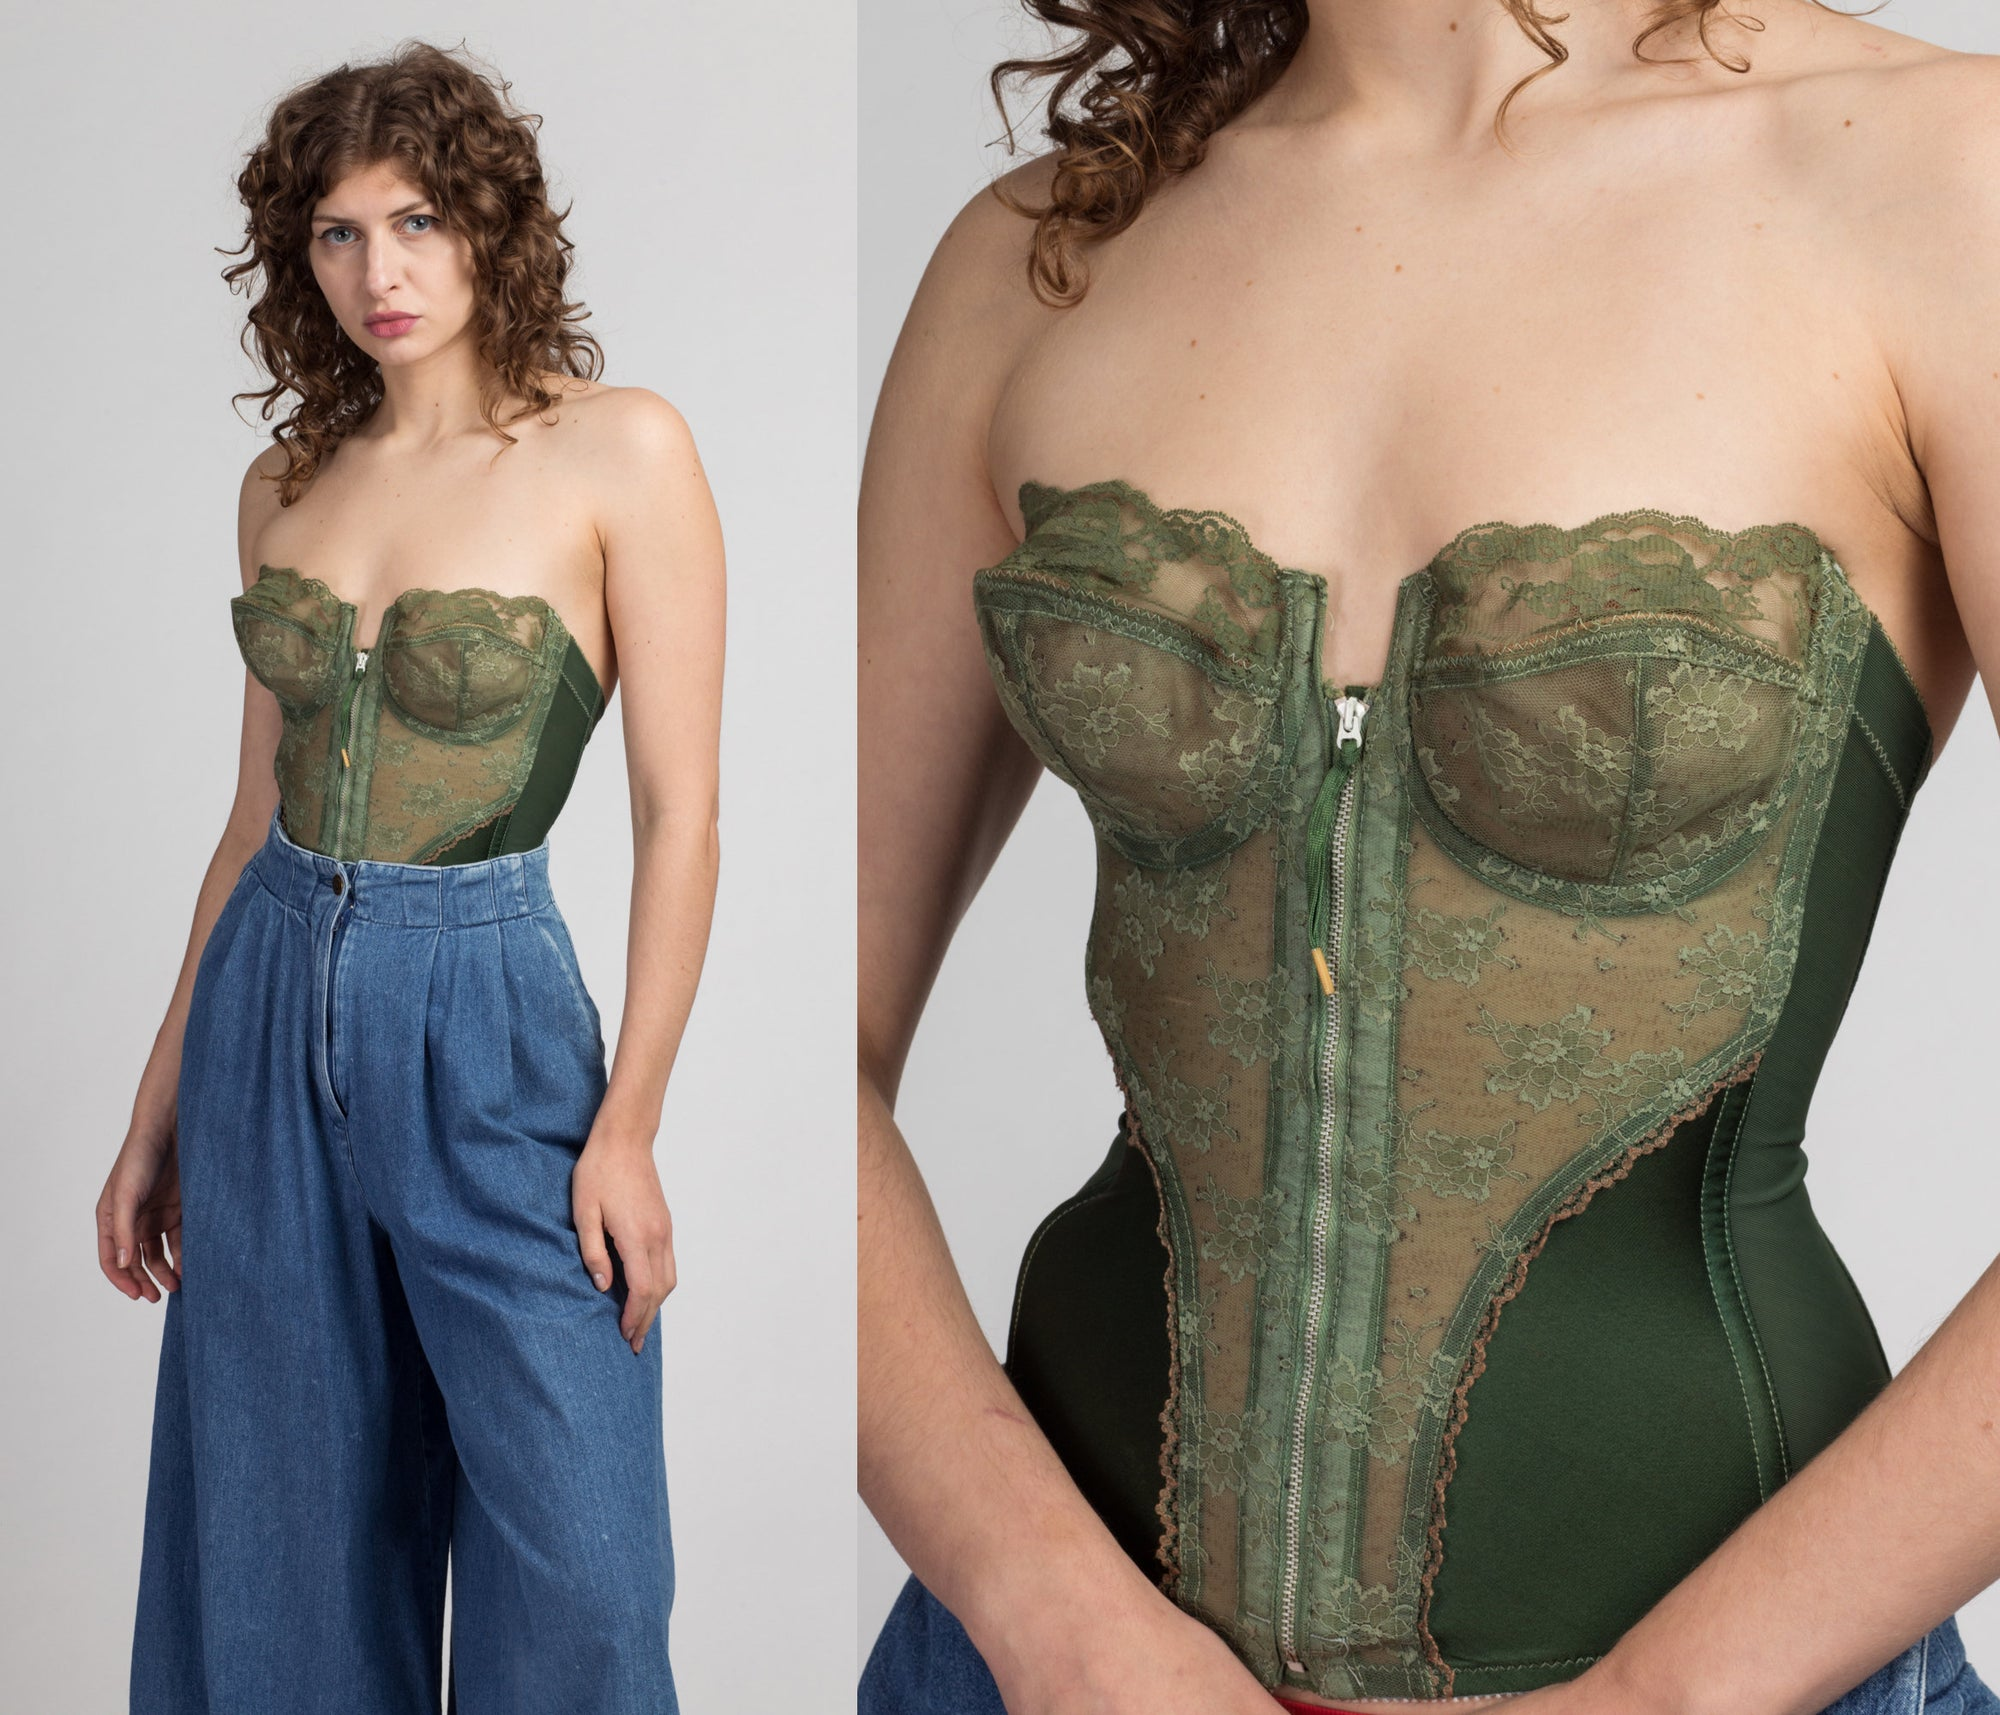 70s Army Green Zip Up Bustier, As Is - 32D | Vintage Lace Corset Longline Bra Pin Up Lingerie